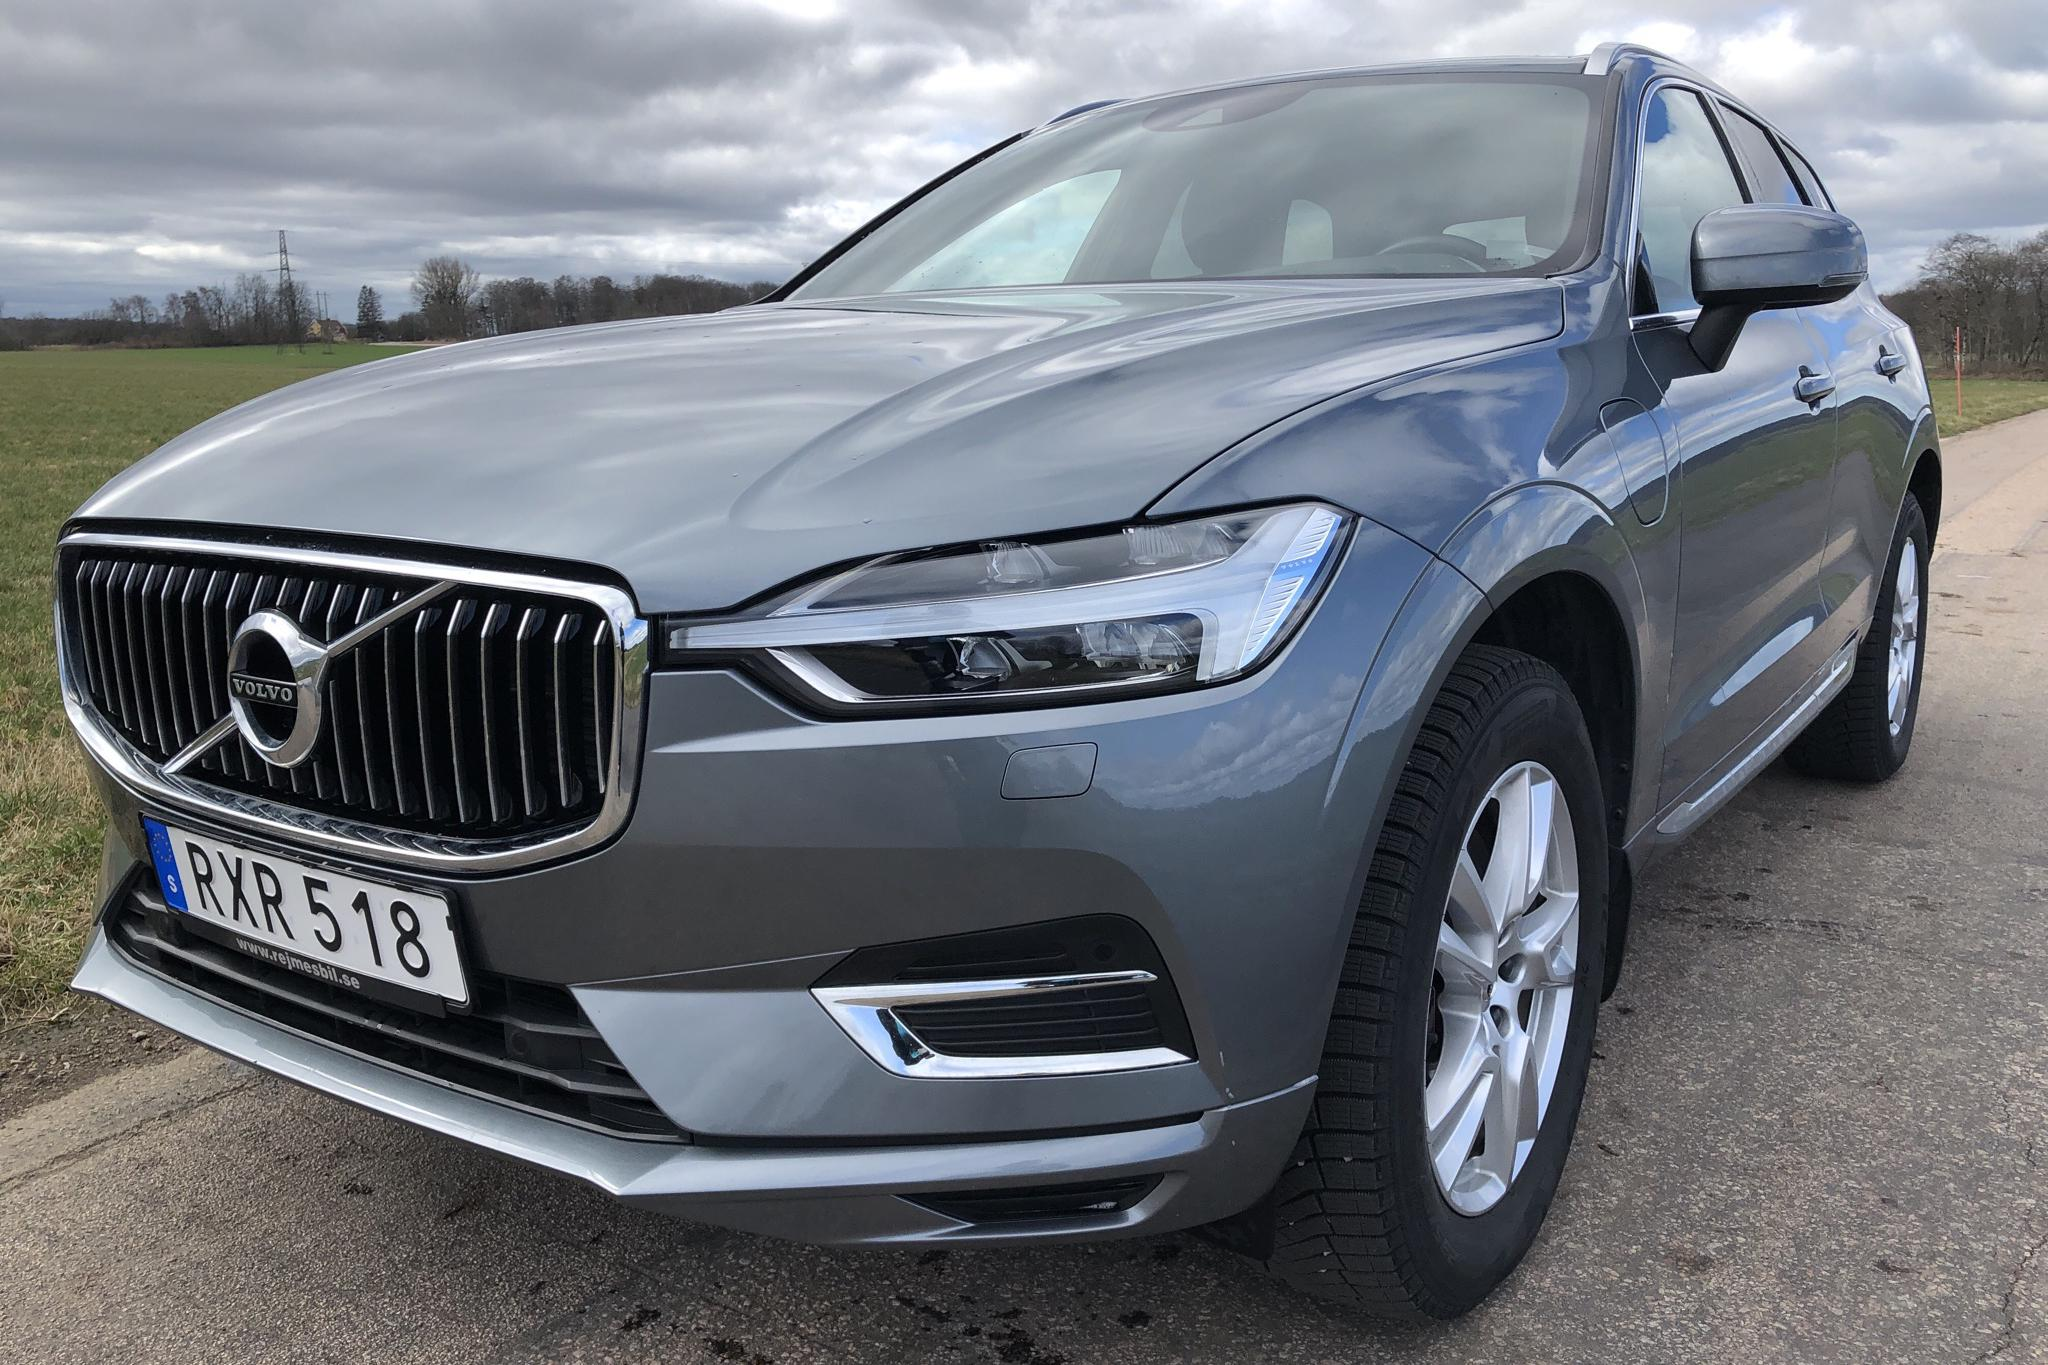 Volvo XC60 T8 AWD Twin Engine (390hk) - 34 780 km - Automatic - gray - 2019